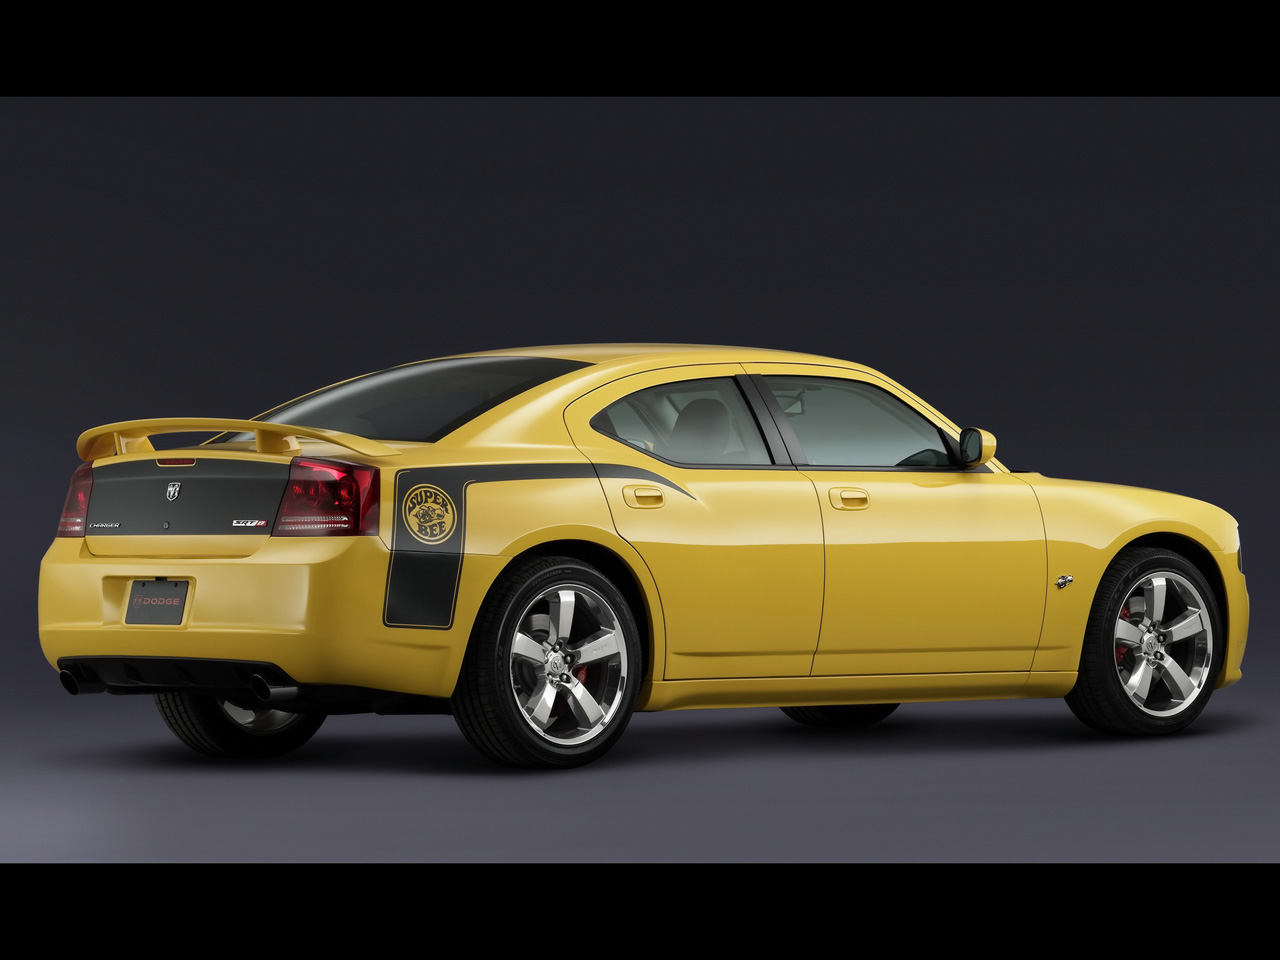 dodge charger srt8 super bee Wallpapers Desktop Download